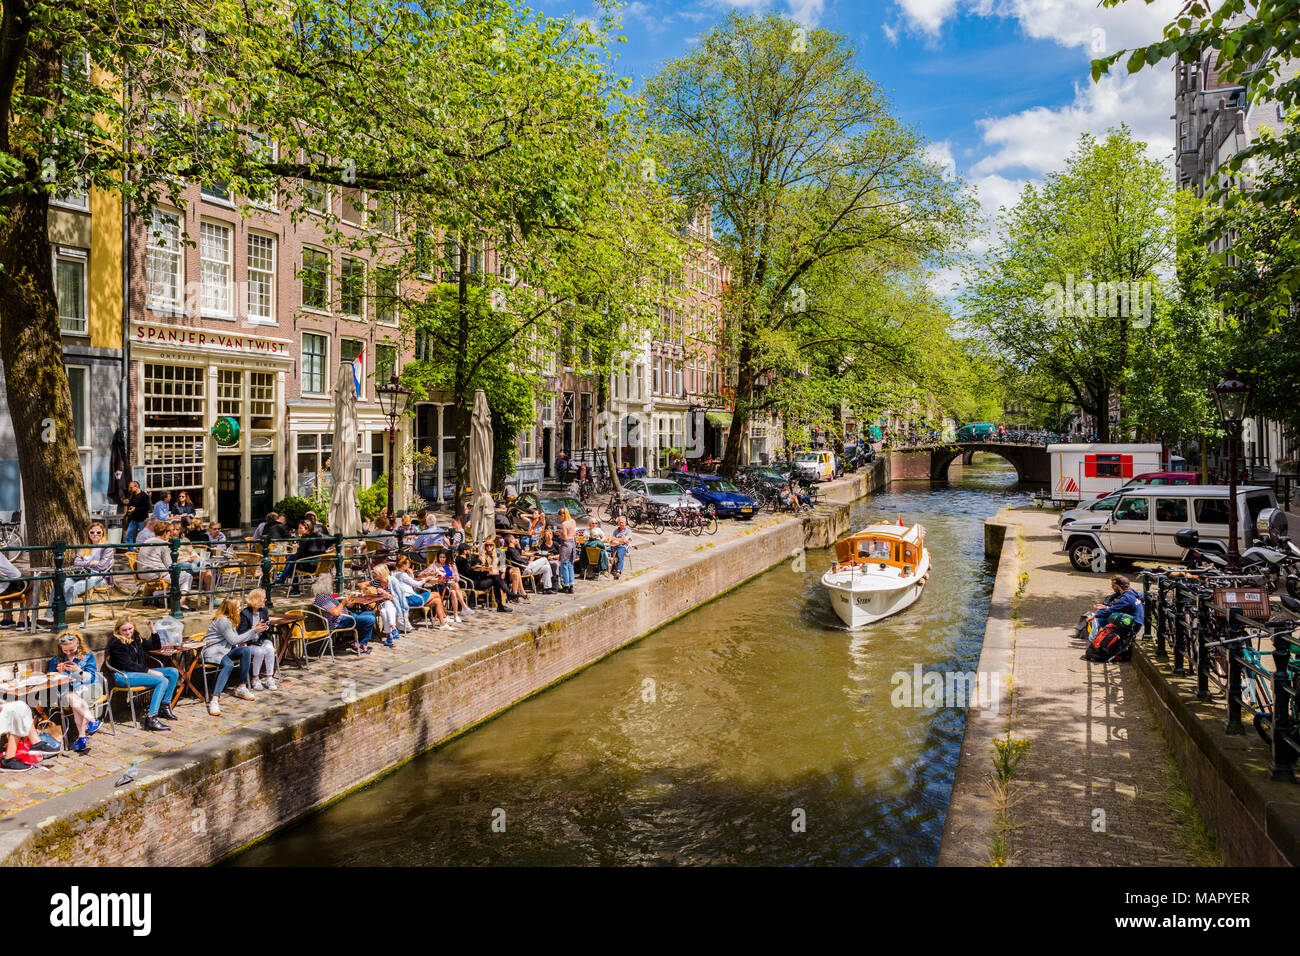 Boat on the Prinsengracht Canal, Amsterdam, Netherlands, Europe - Stock Image